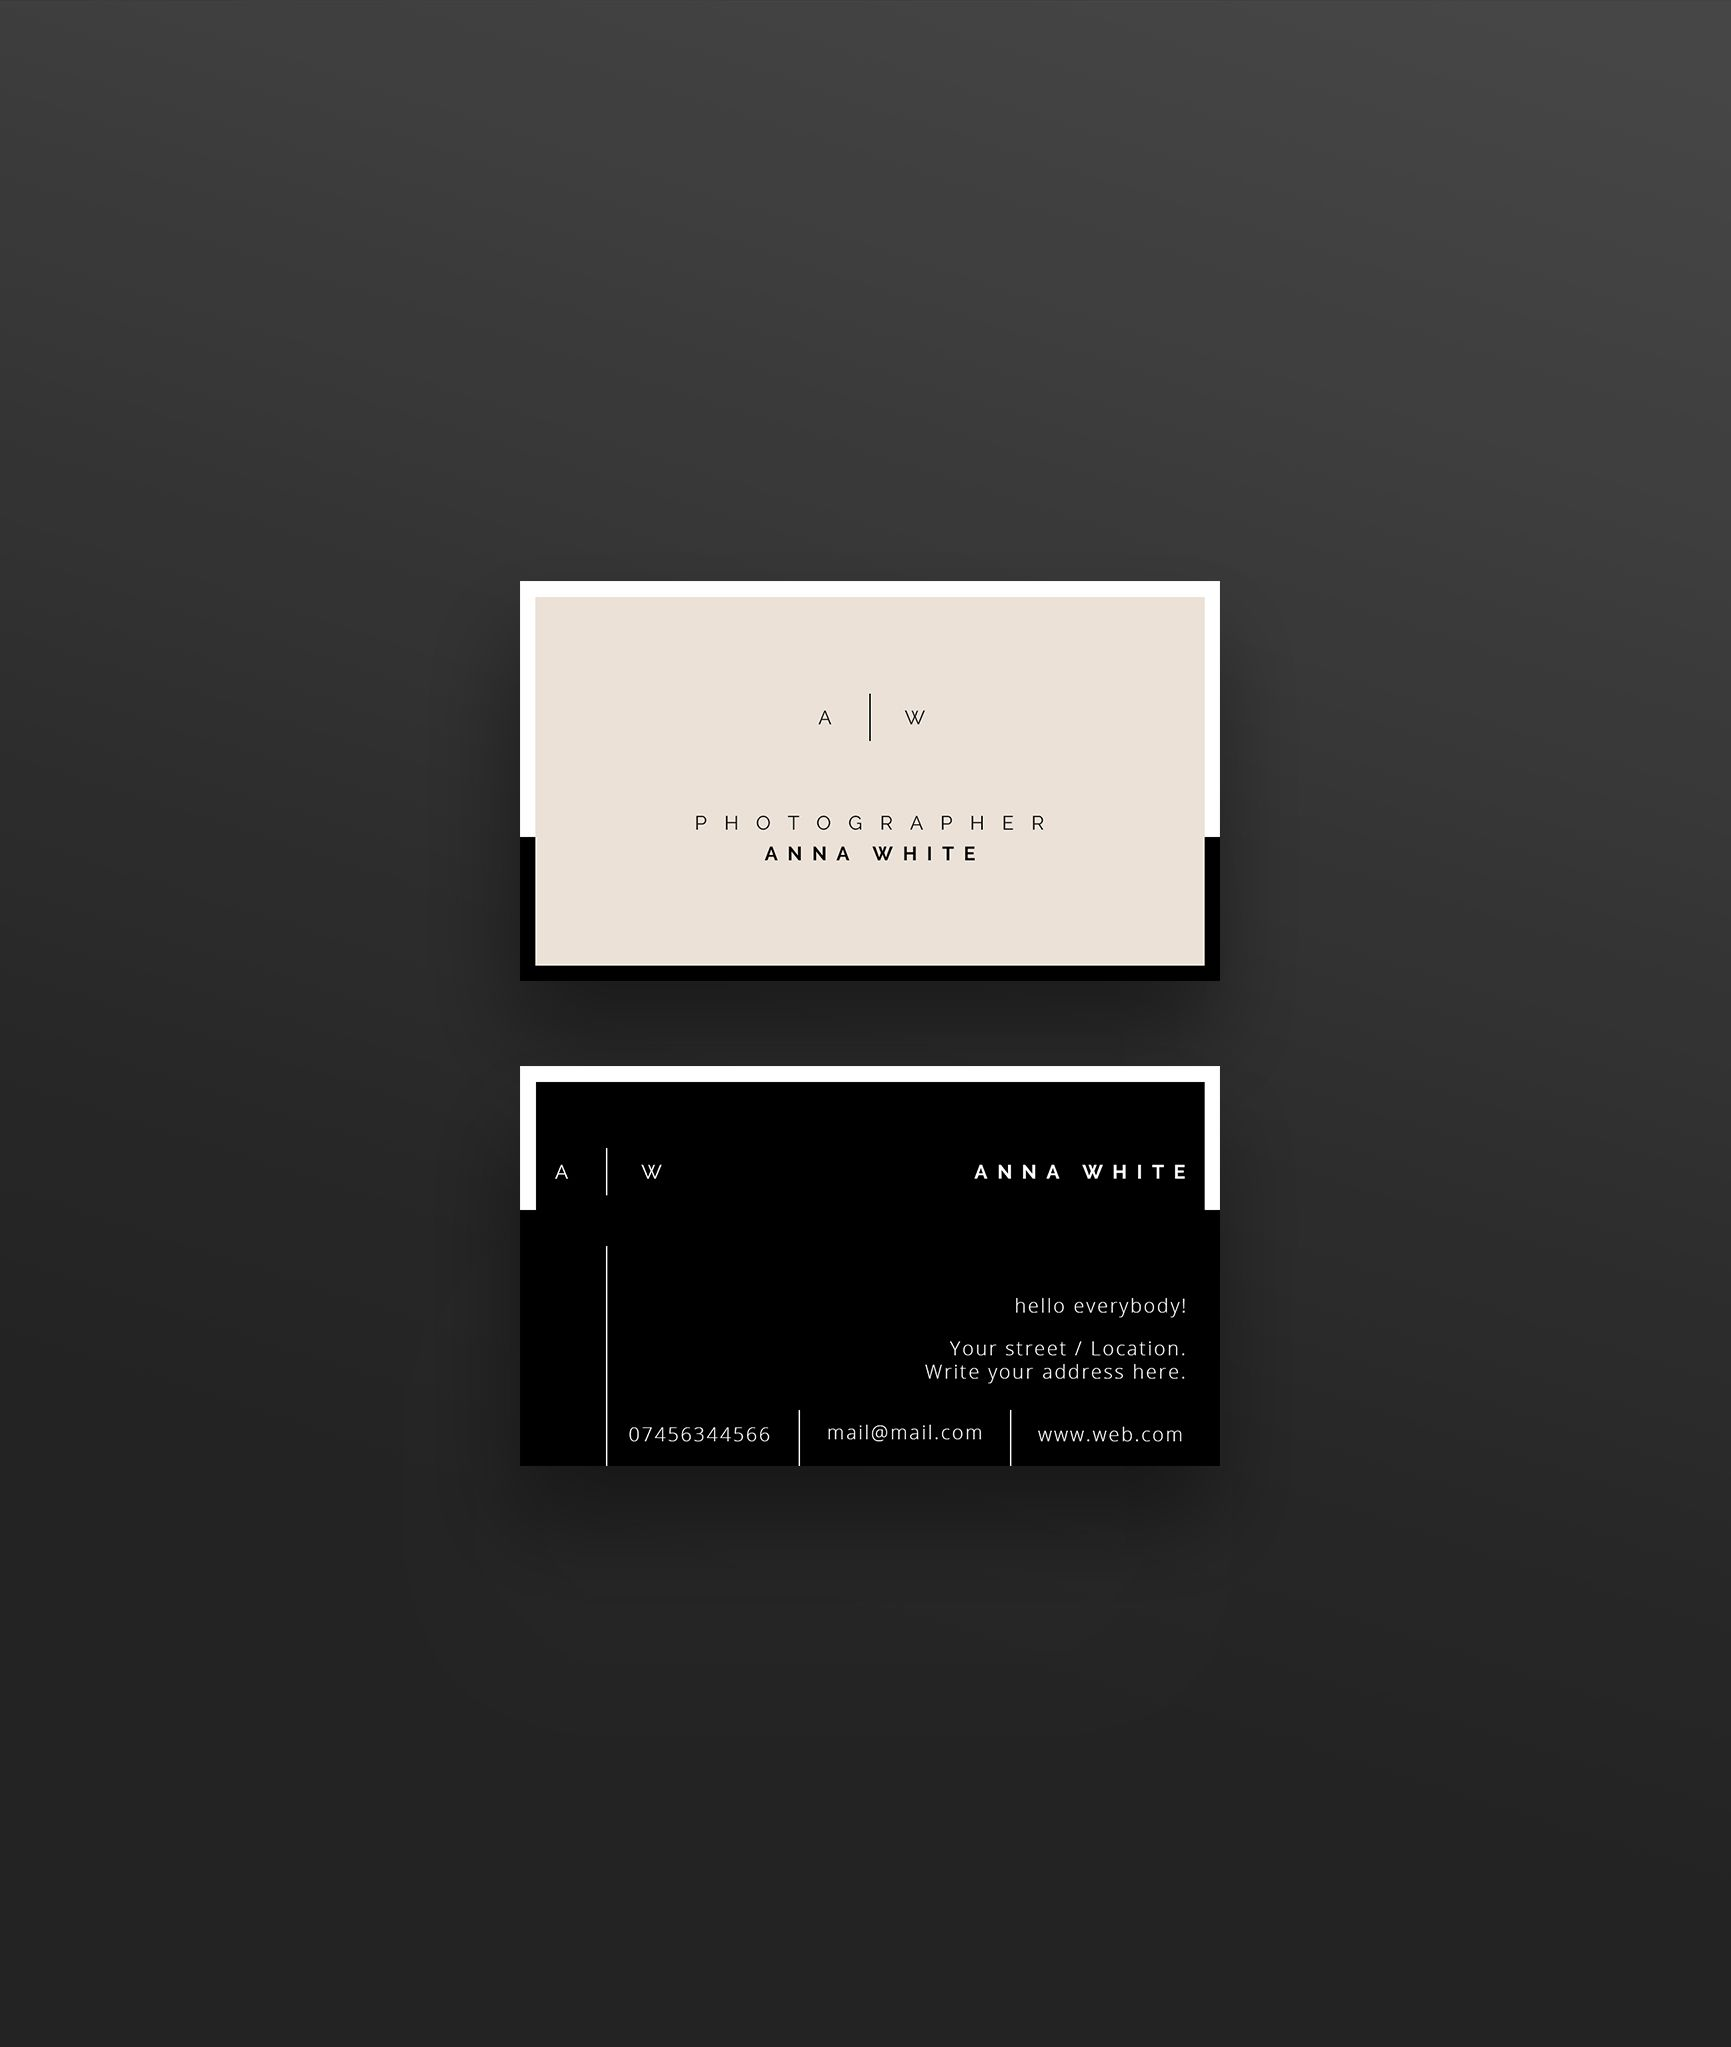 Business Card Template For Adobe Photoshop Psd File Minimalist Clean Elegant Double Sided Design Fully Adjustable Clean Business Card Design Graphic Design Business Card Name Card Design